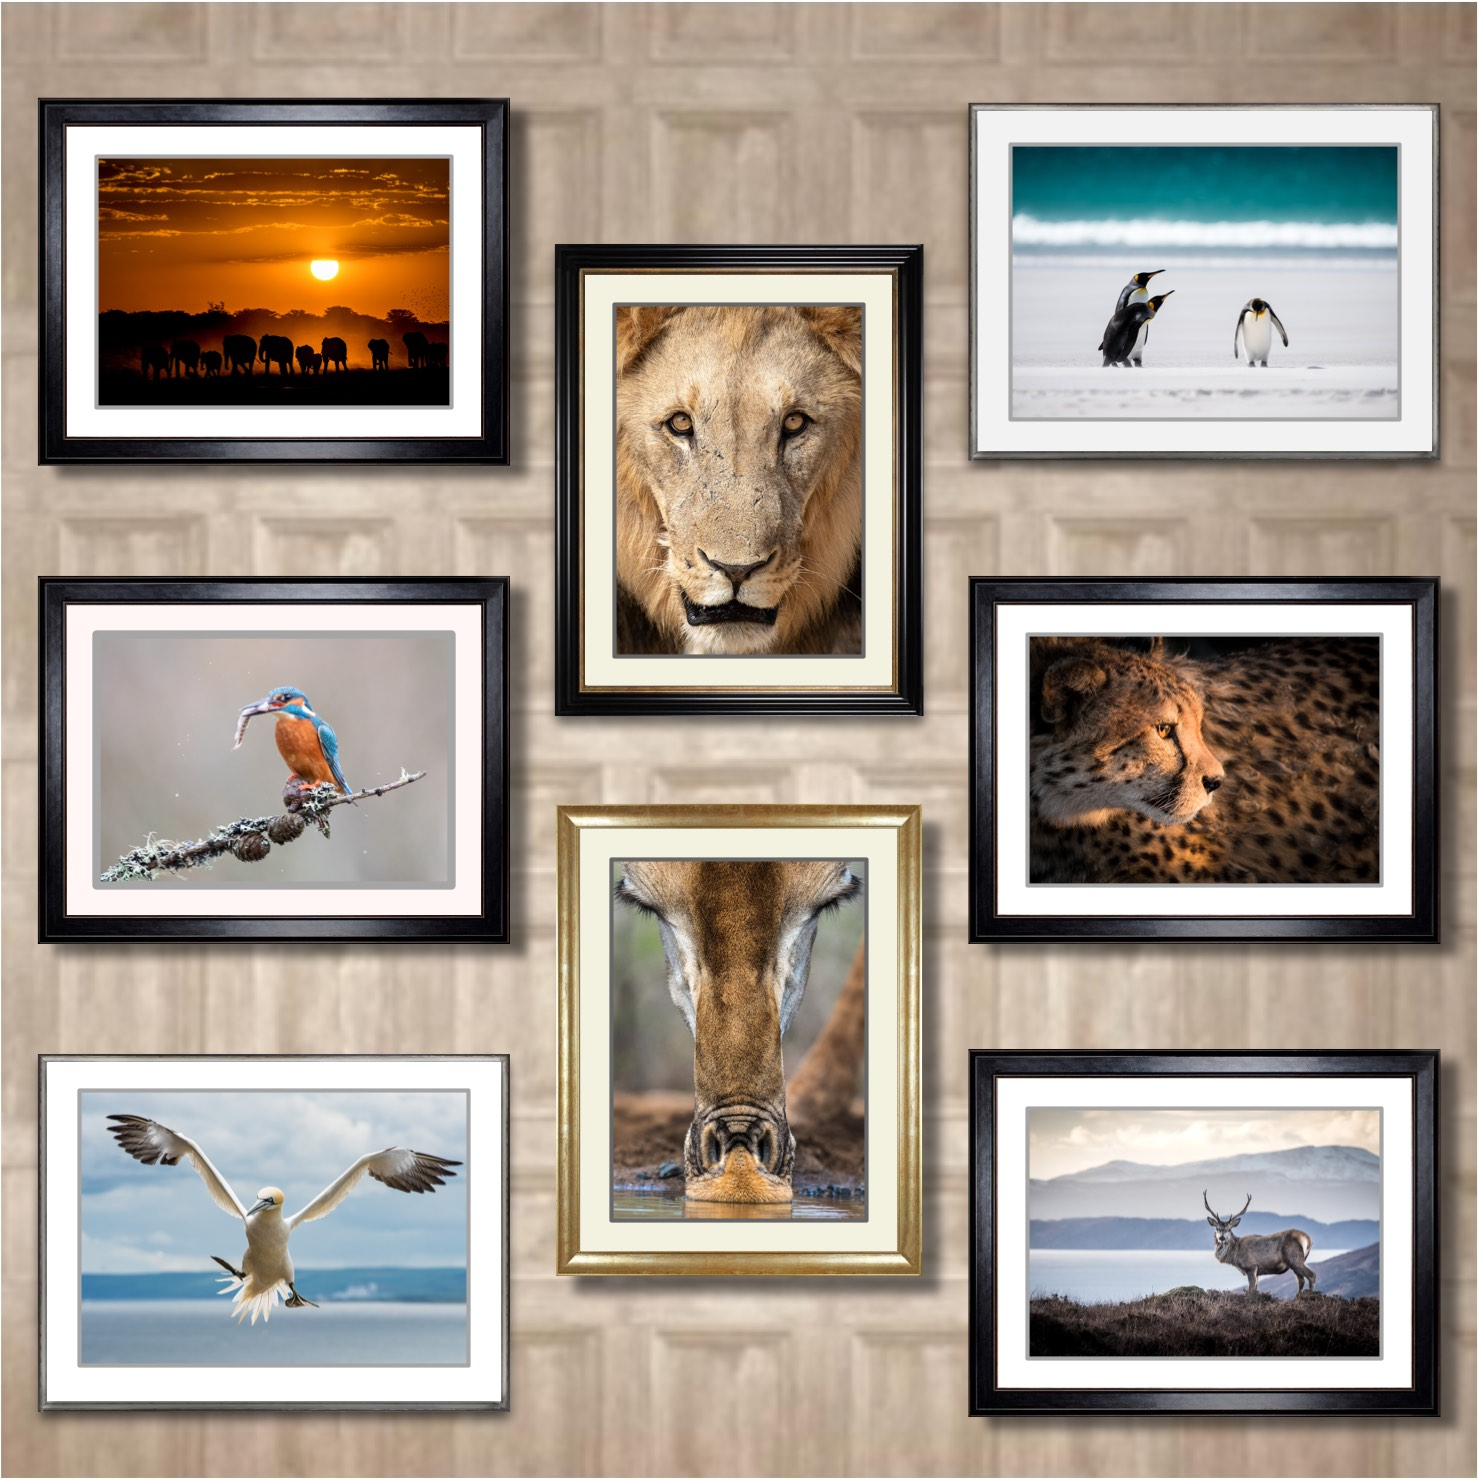 Galleries - Prints For Sale